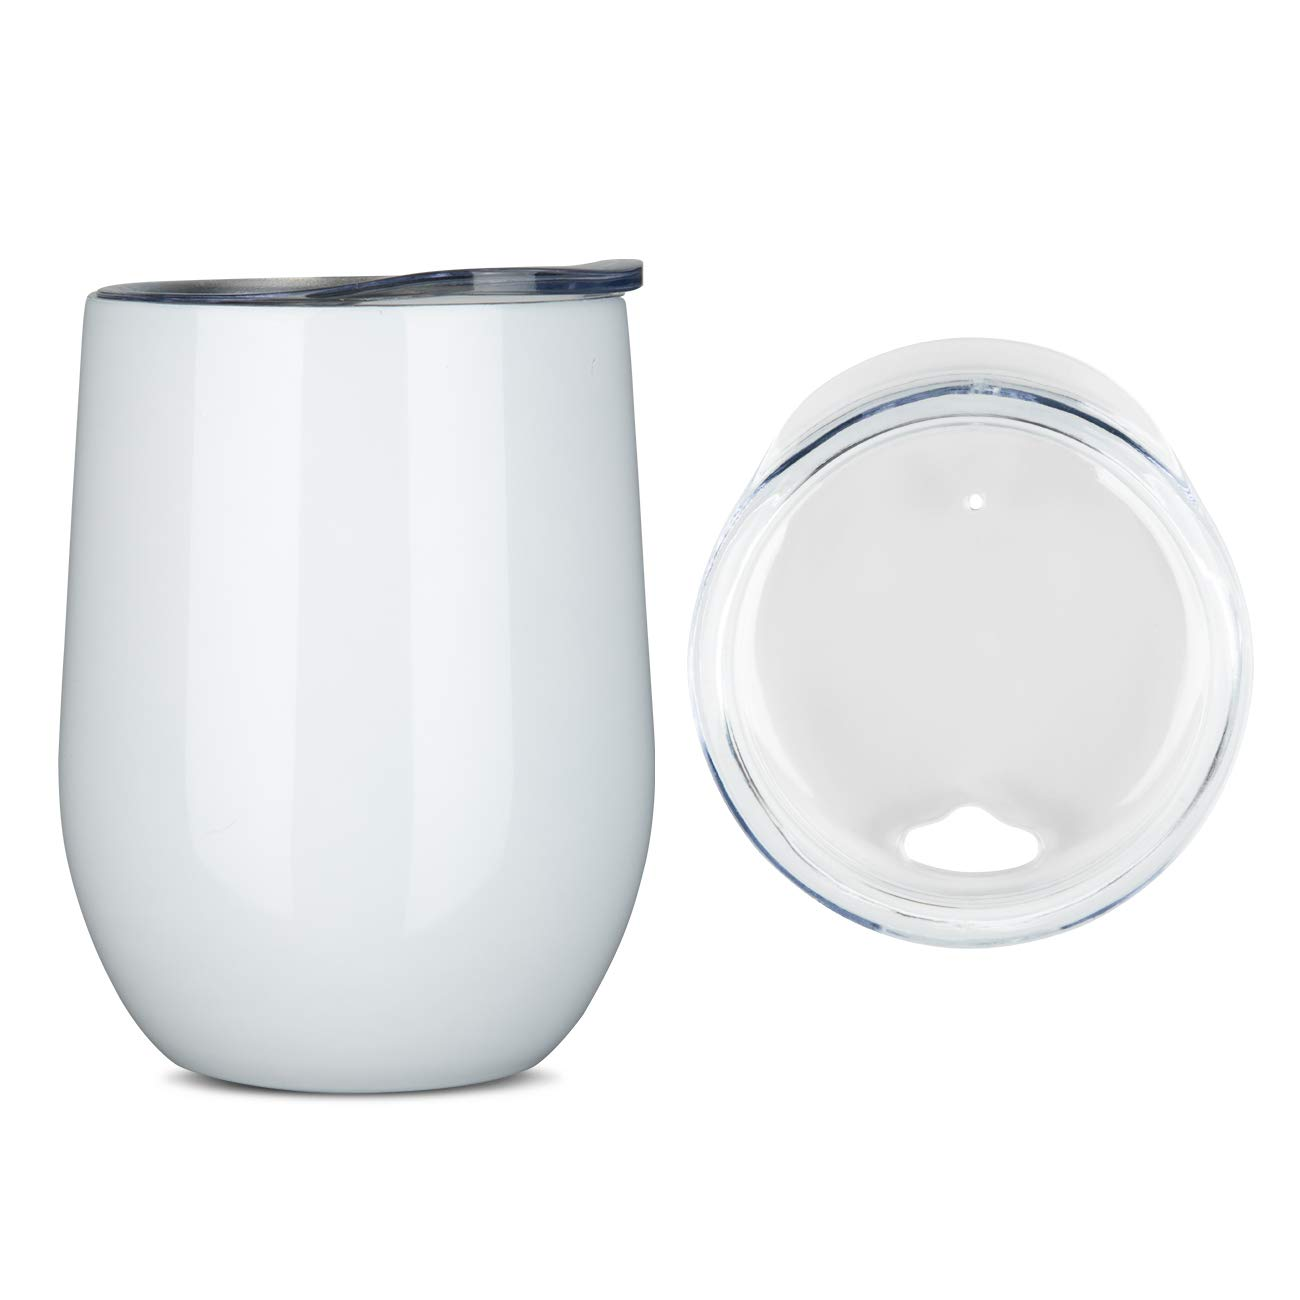 Stainless Steel Stemless Wine Glass Tumbler with Lid, 12 oz | Double Wall Vacuum Insulated Travel Tumbler Cup for Coffee, Wine, Cocktails, Ice Cream - Wall Vaccum Insulation Thermos cup (White) by ONEB (Image #3)